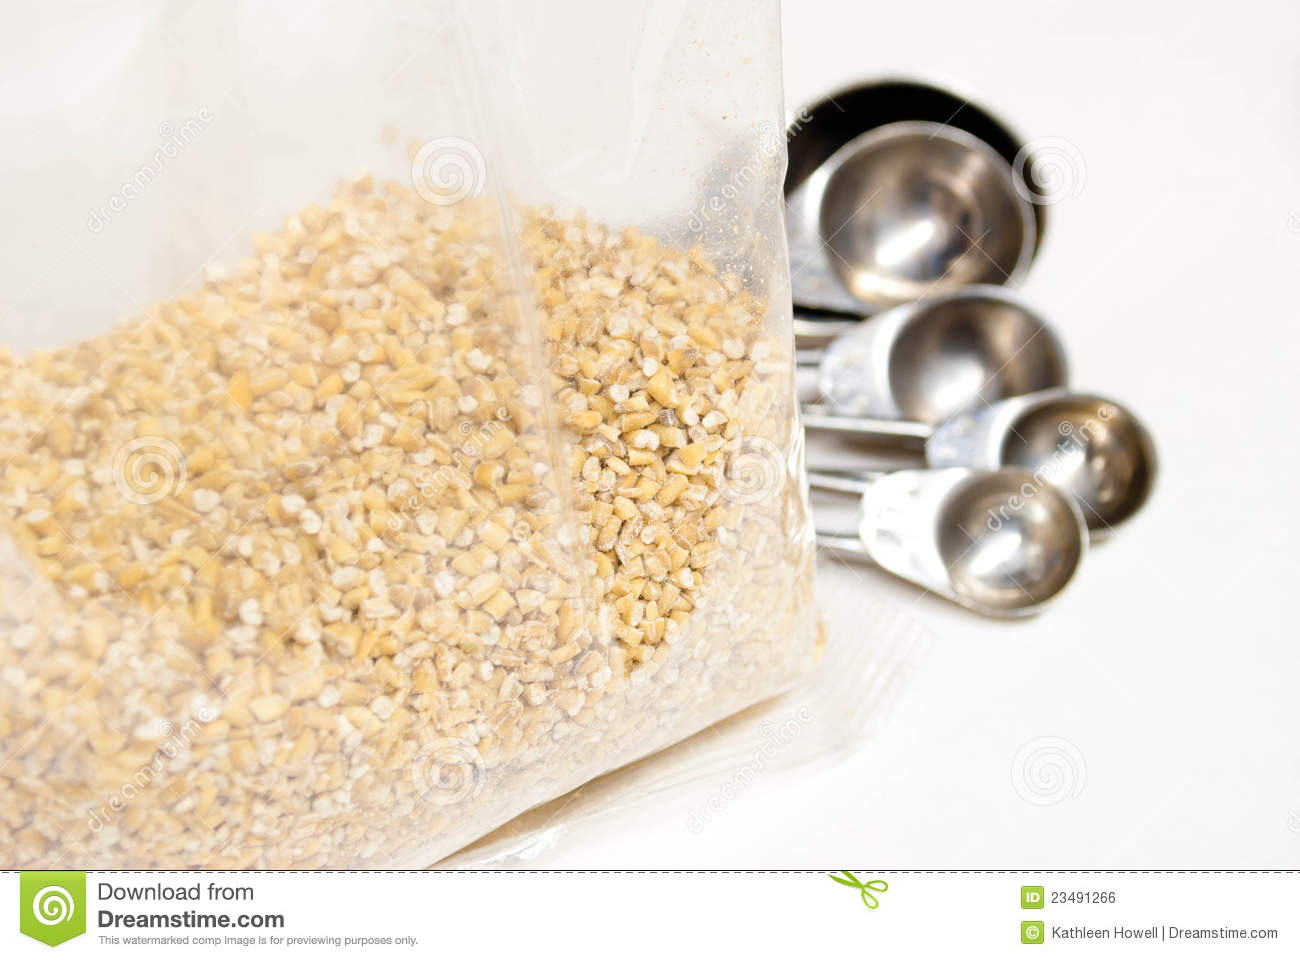 Plastic Bag Of Steel Cut Oats Royalty Free Stock Image   Image